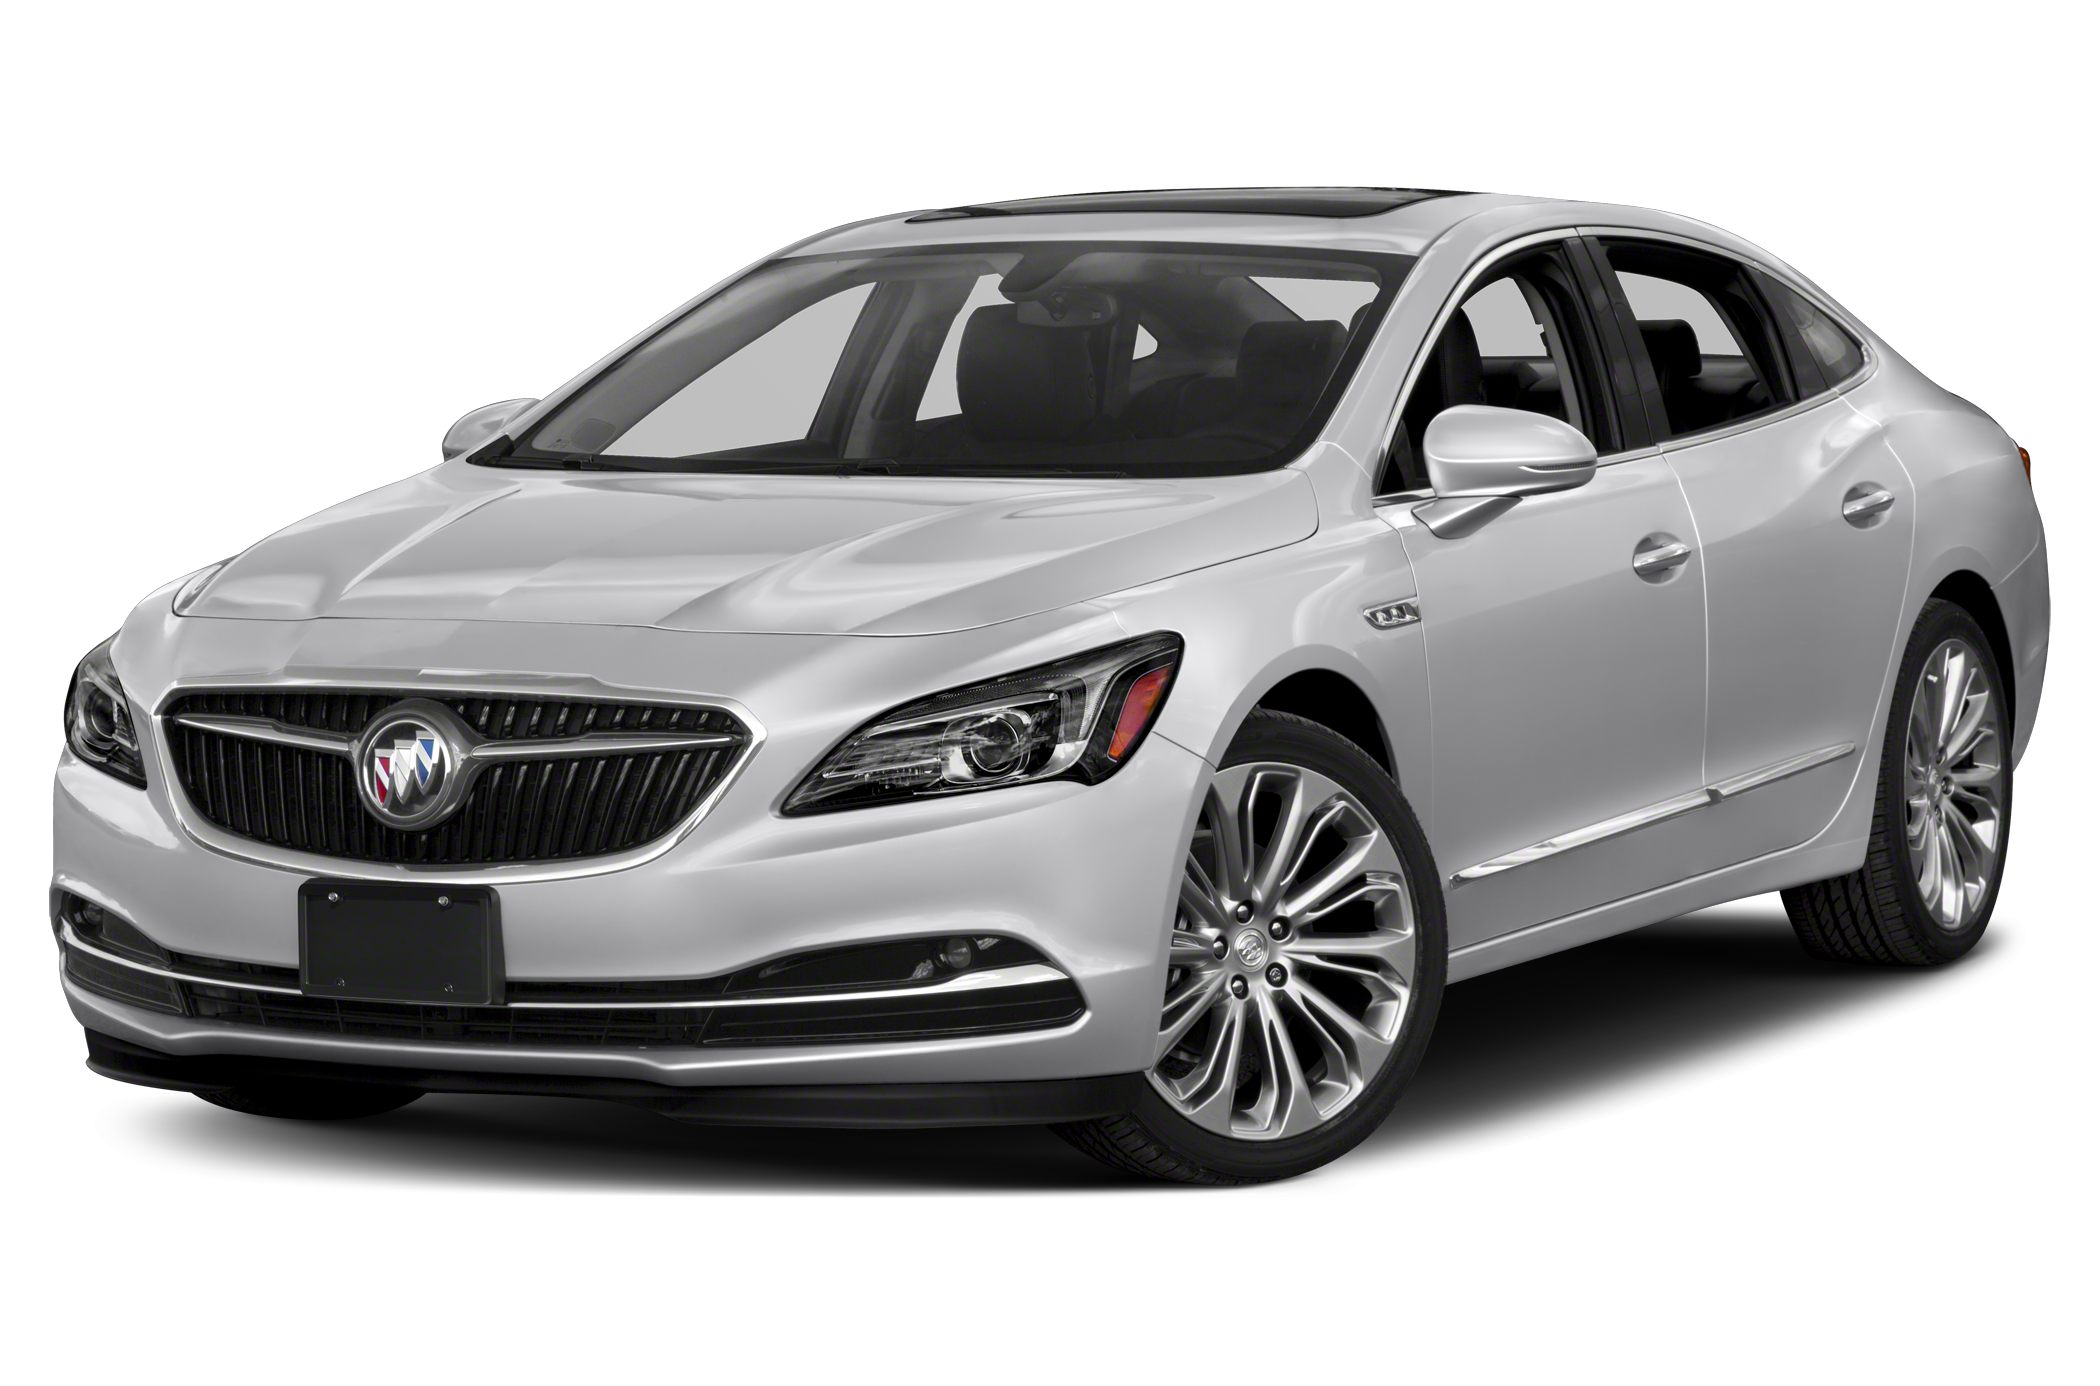 2017 Buick LaCrosse Essence Recent Arrival WARRANTY FOREVER included at NO EXTRA COST See ou